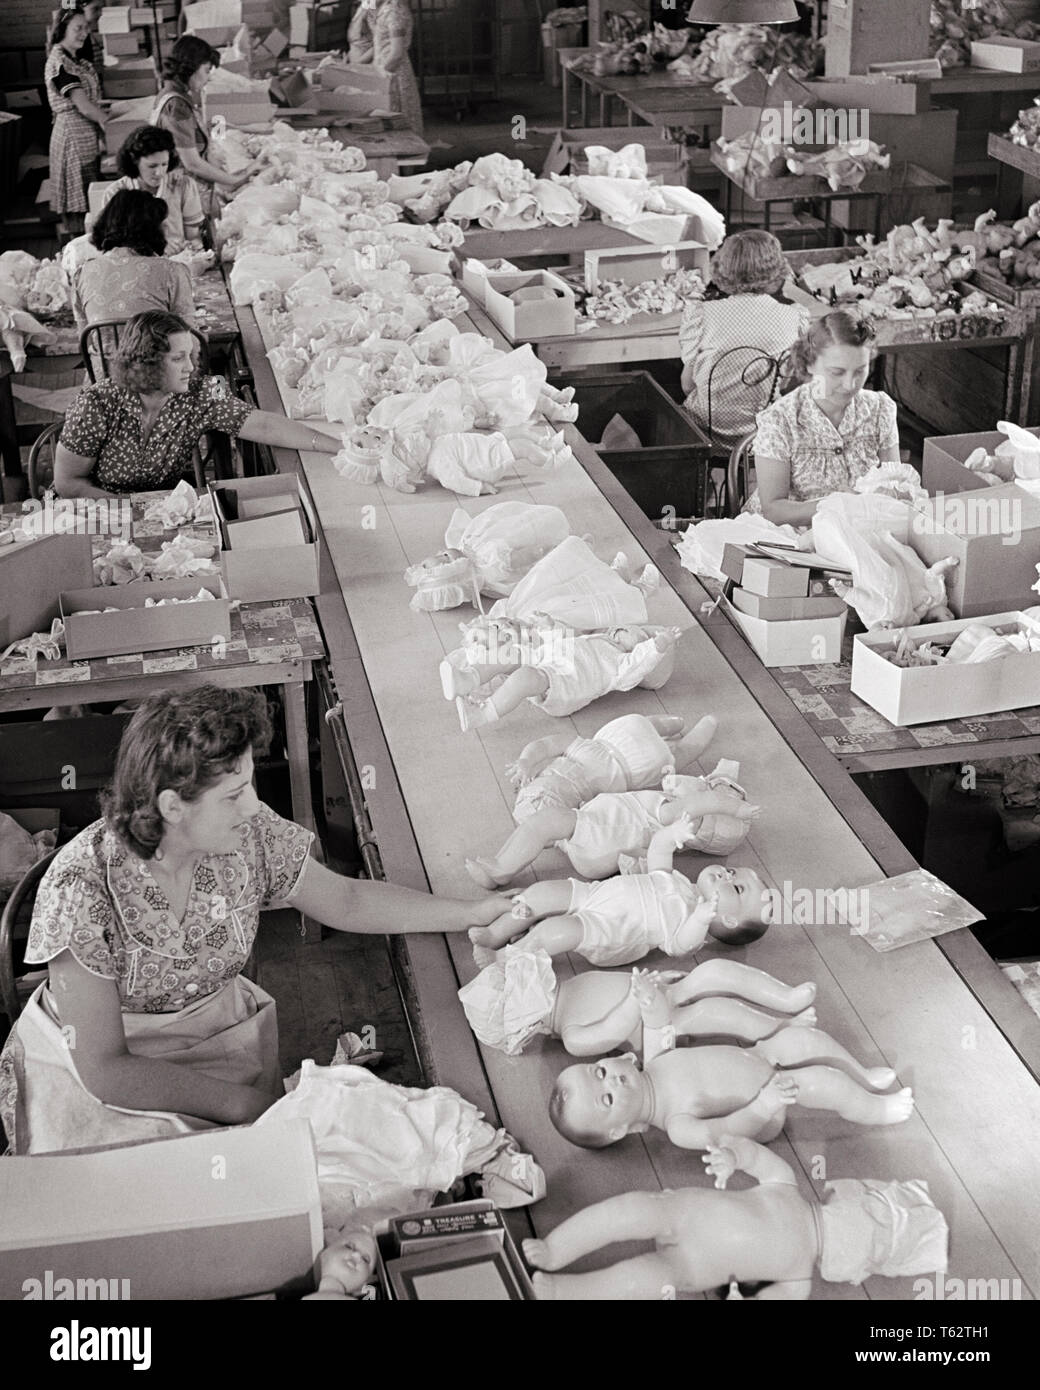 1950s women working on assembly line at doll factory dressing the dolls to putting in boxes